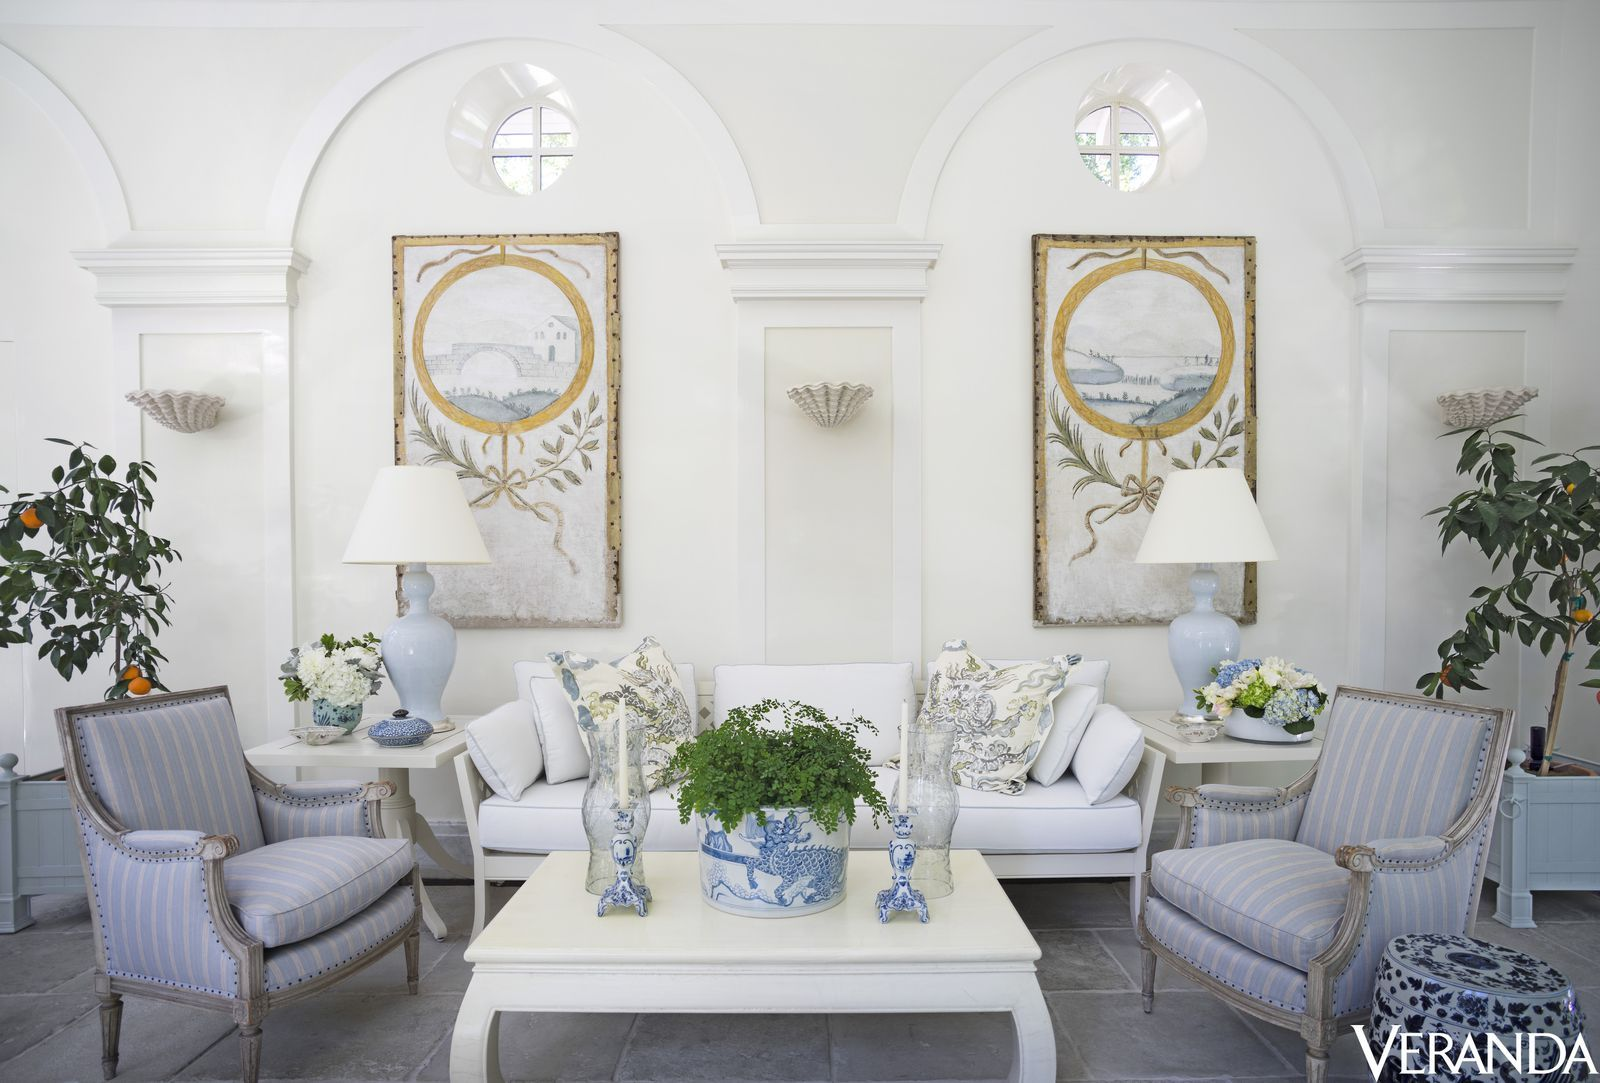 35 Elegant White Rooms To Inspire Your Own Home Decor | White rooms ...